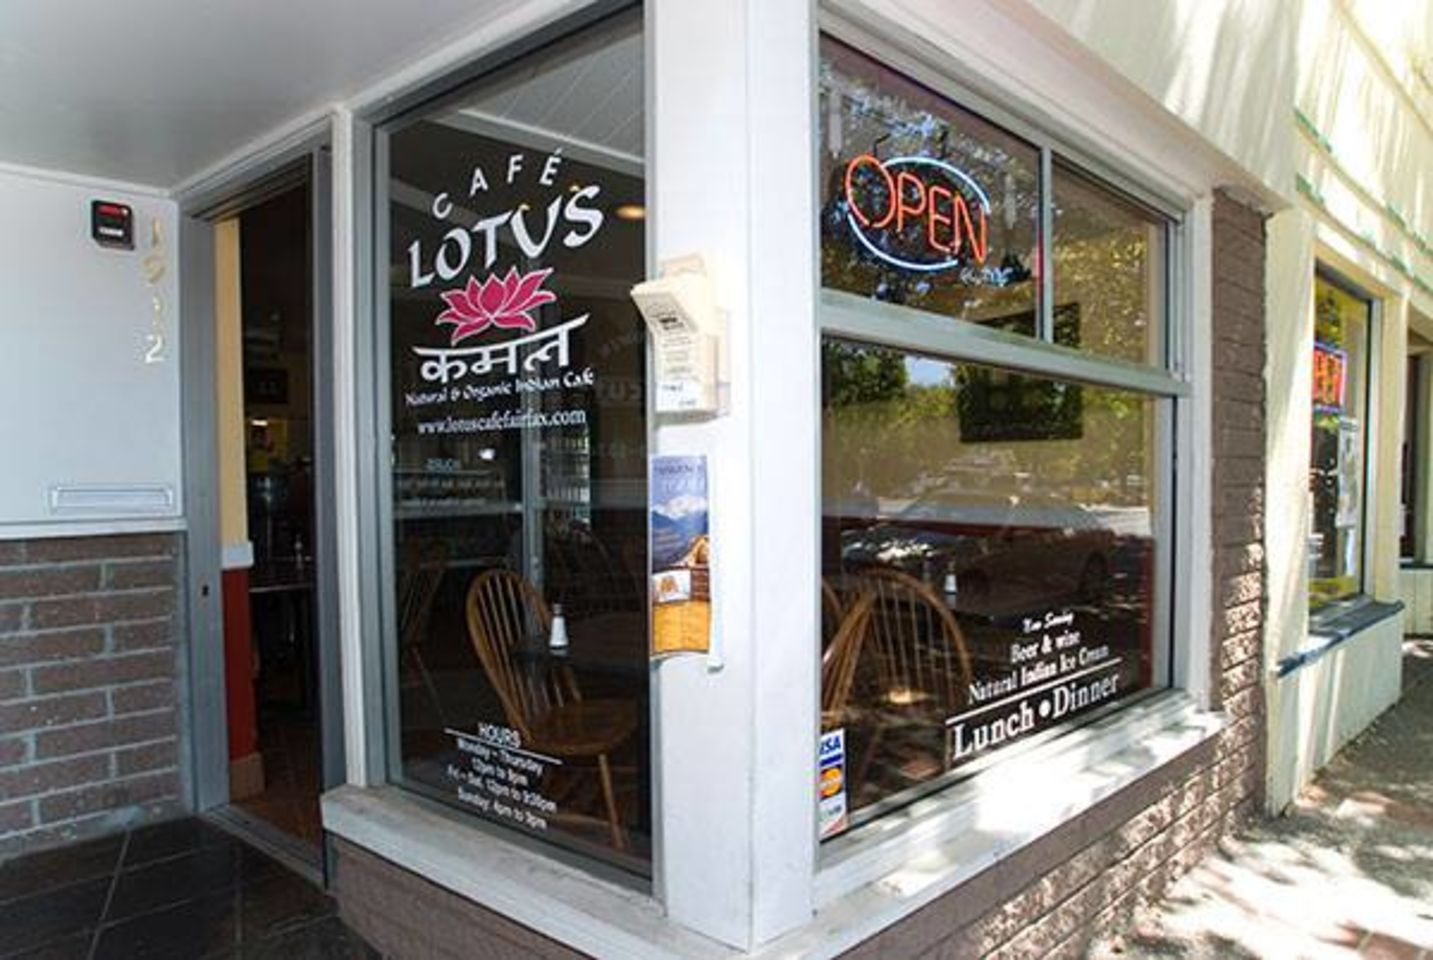 A photo of Cafe Lotus